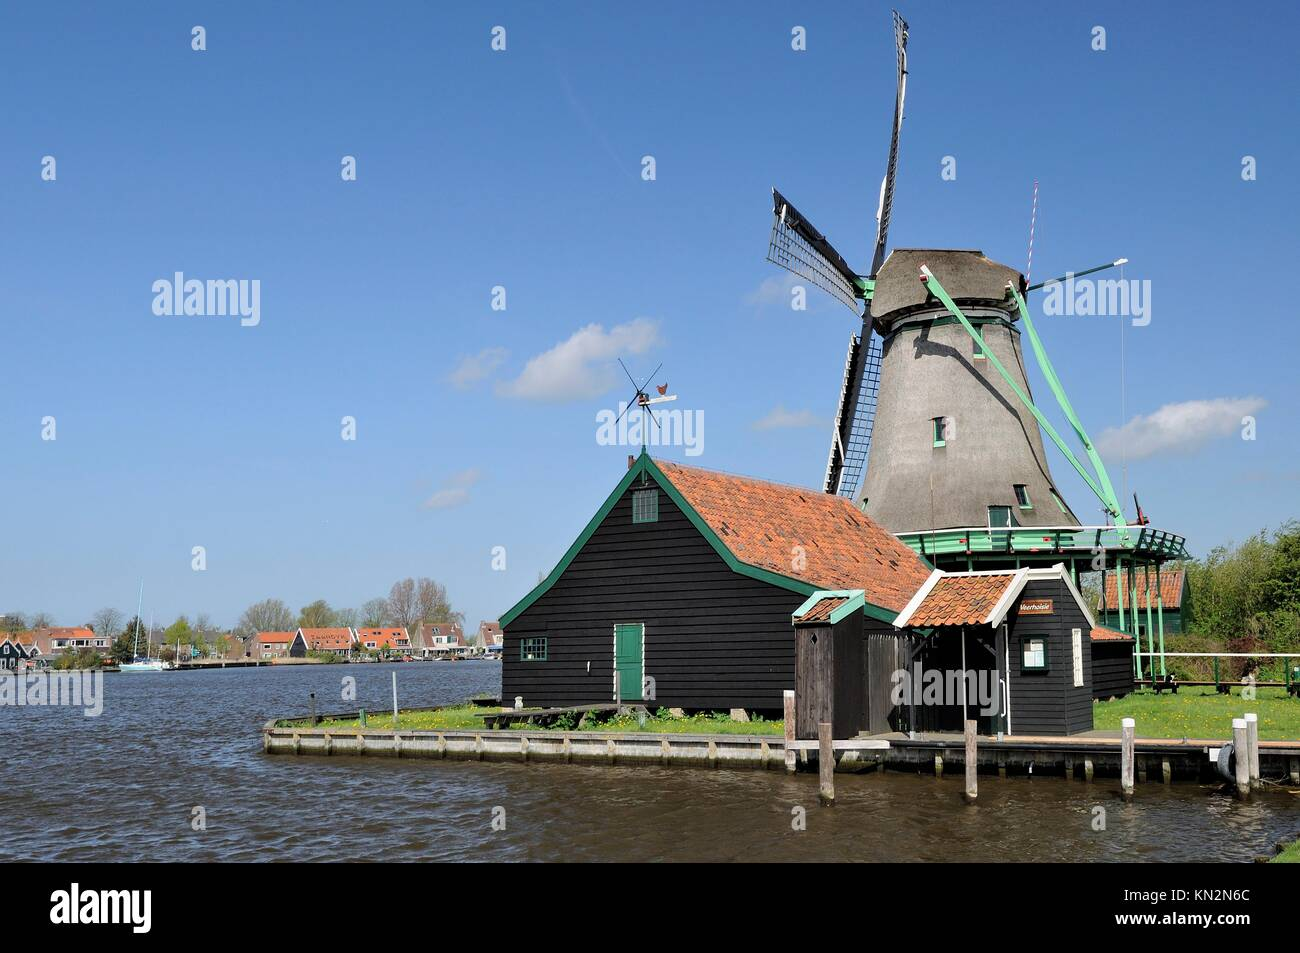 view of traditional windmill at touristic location, shot in bright spring light - Stock Image